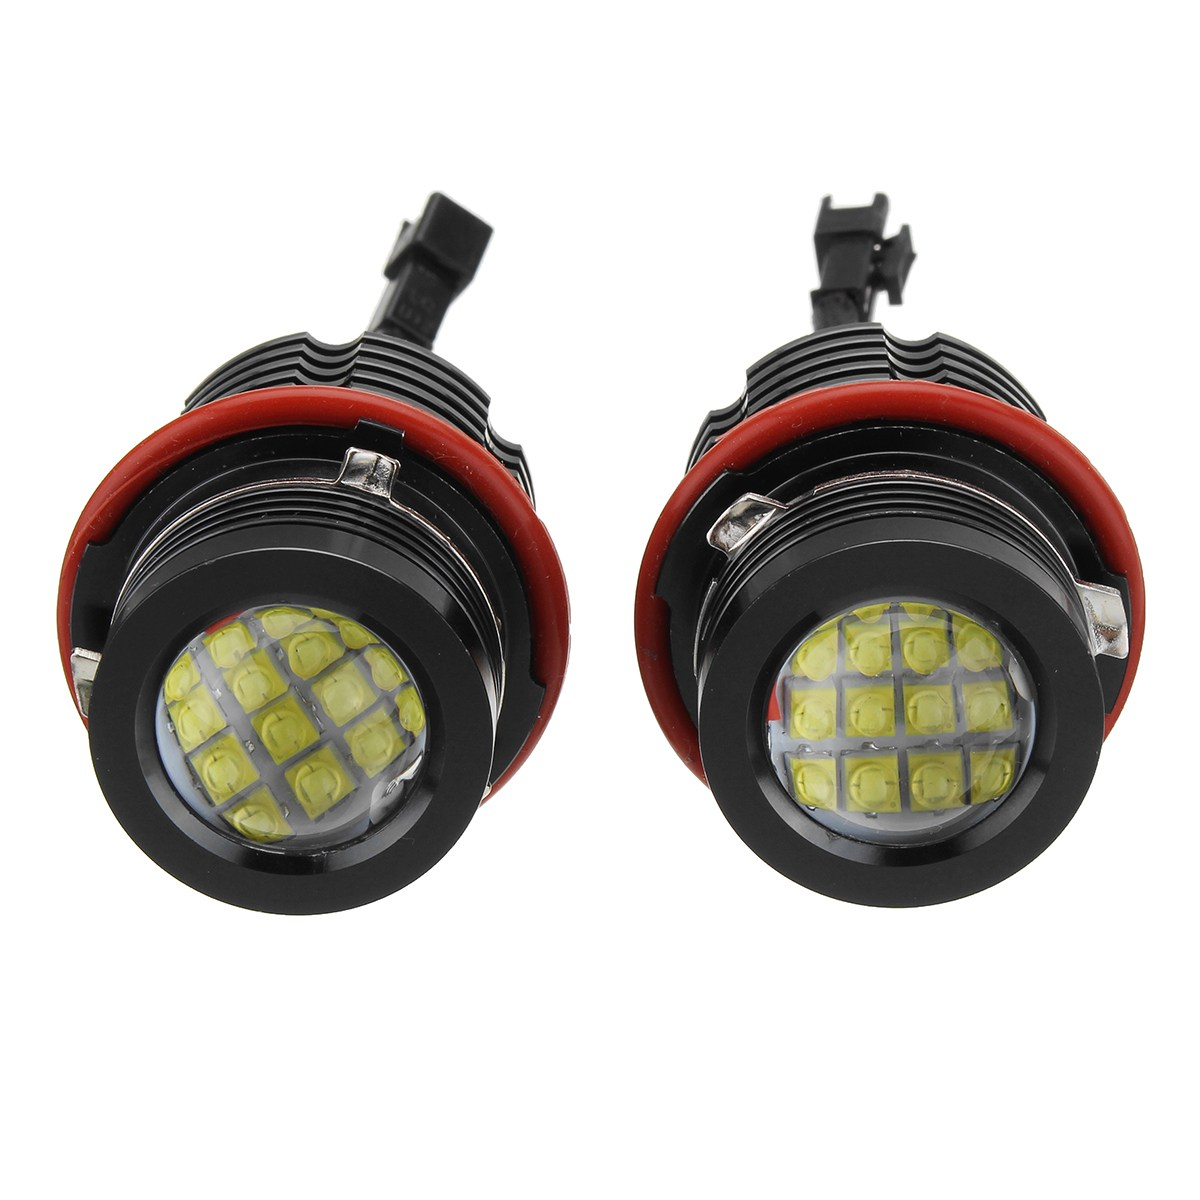 2PCS 80W LED Car Fog Light headlight Bulb 16LED Error Free Angel Eye Light Headlight Kit For BMW E39 E60 E87 E65